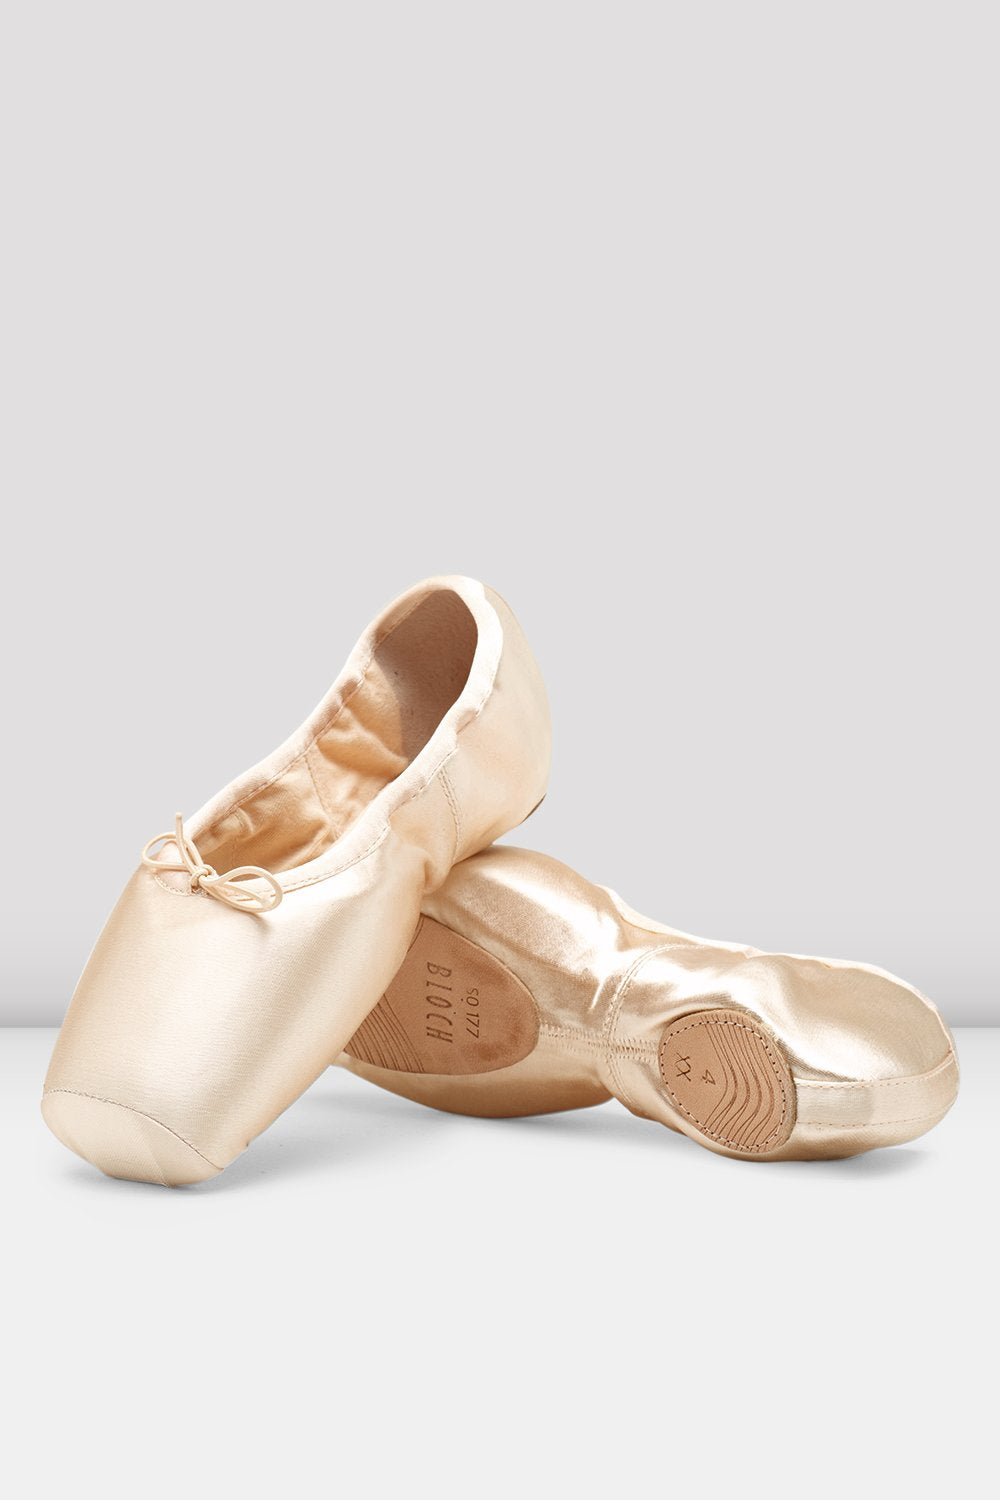 Axi Stretch Pointe Shoes - BLOCH US